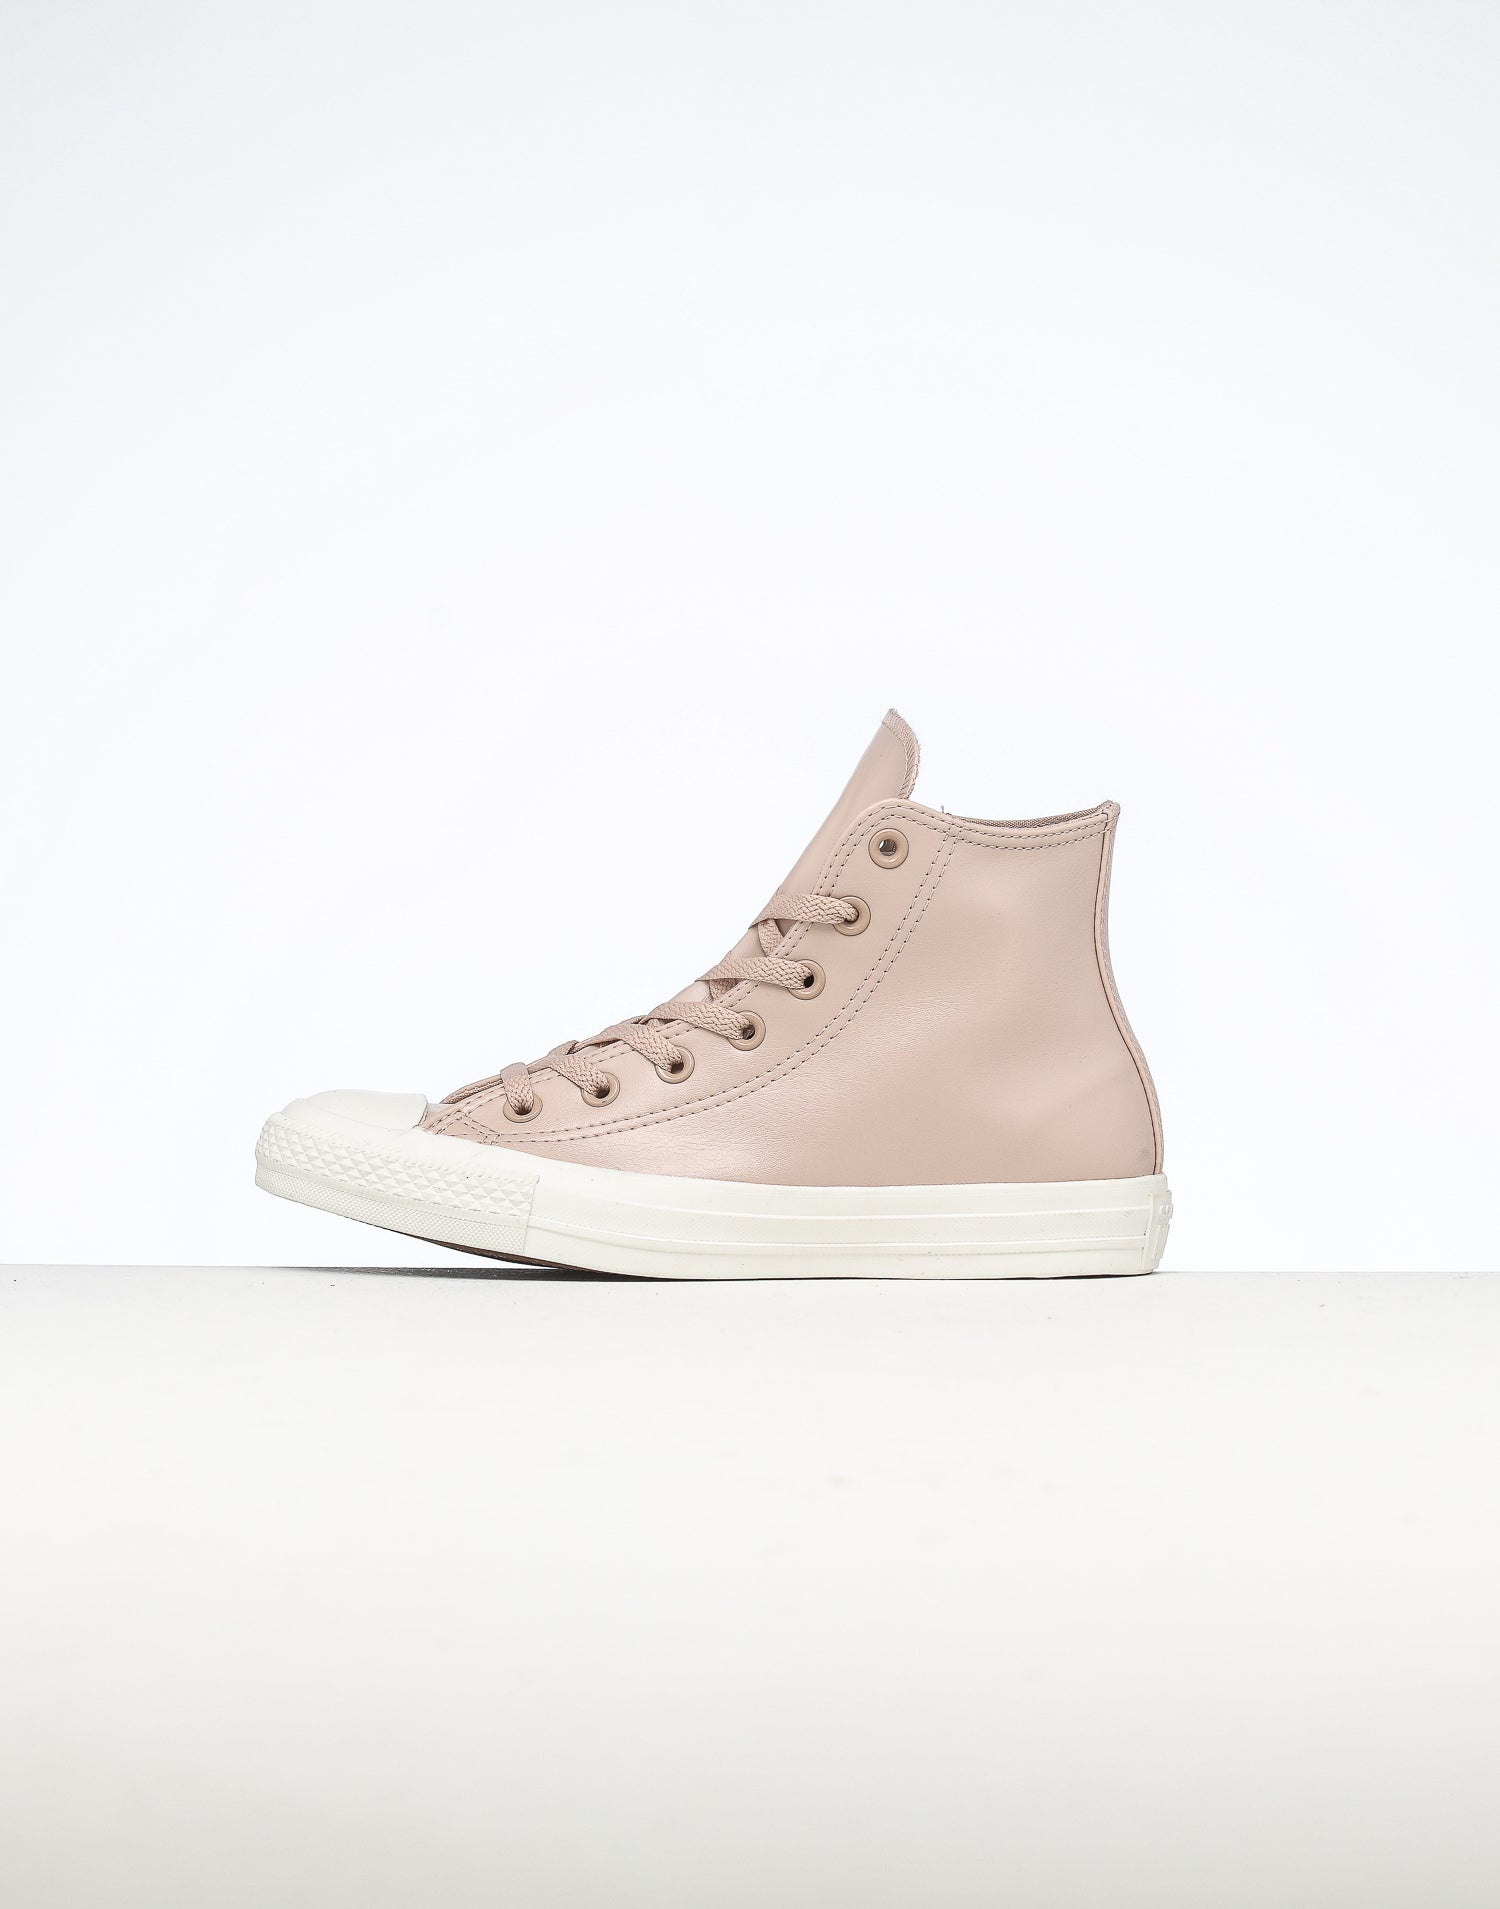 Shop Converse Culture Kings | Culture Kings NZ